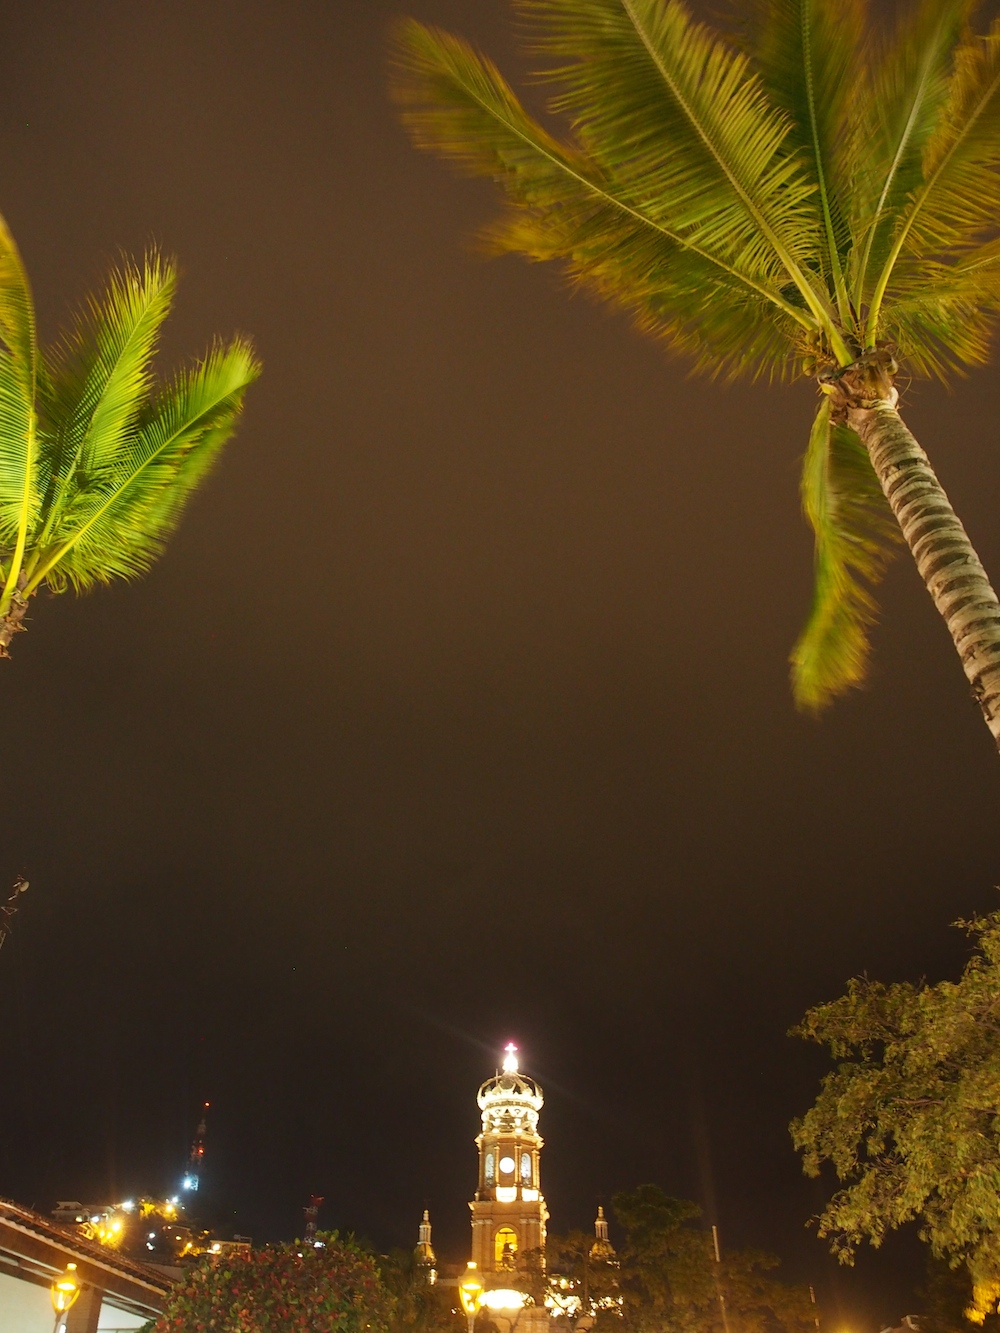 Walking along the malecon, with wind in the palms, the cathedral was all lit up, the crown jewel of Puerto Vallarta.